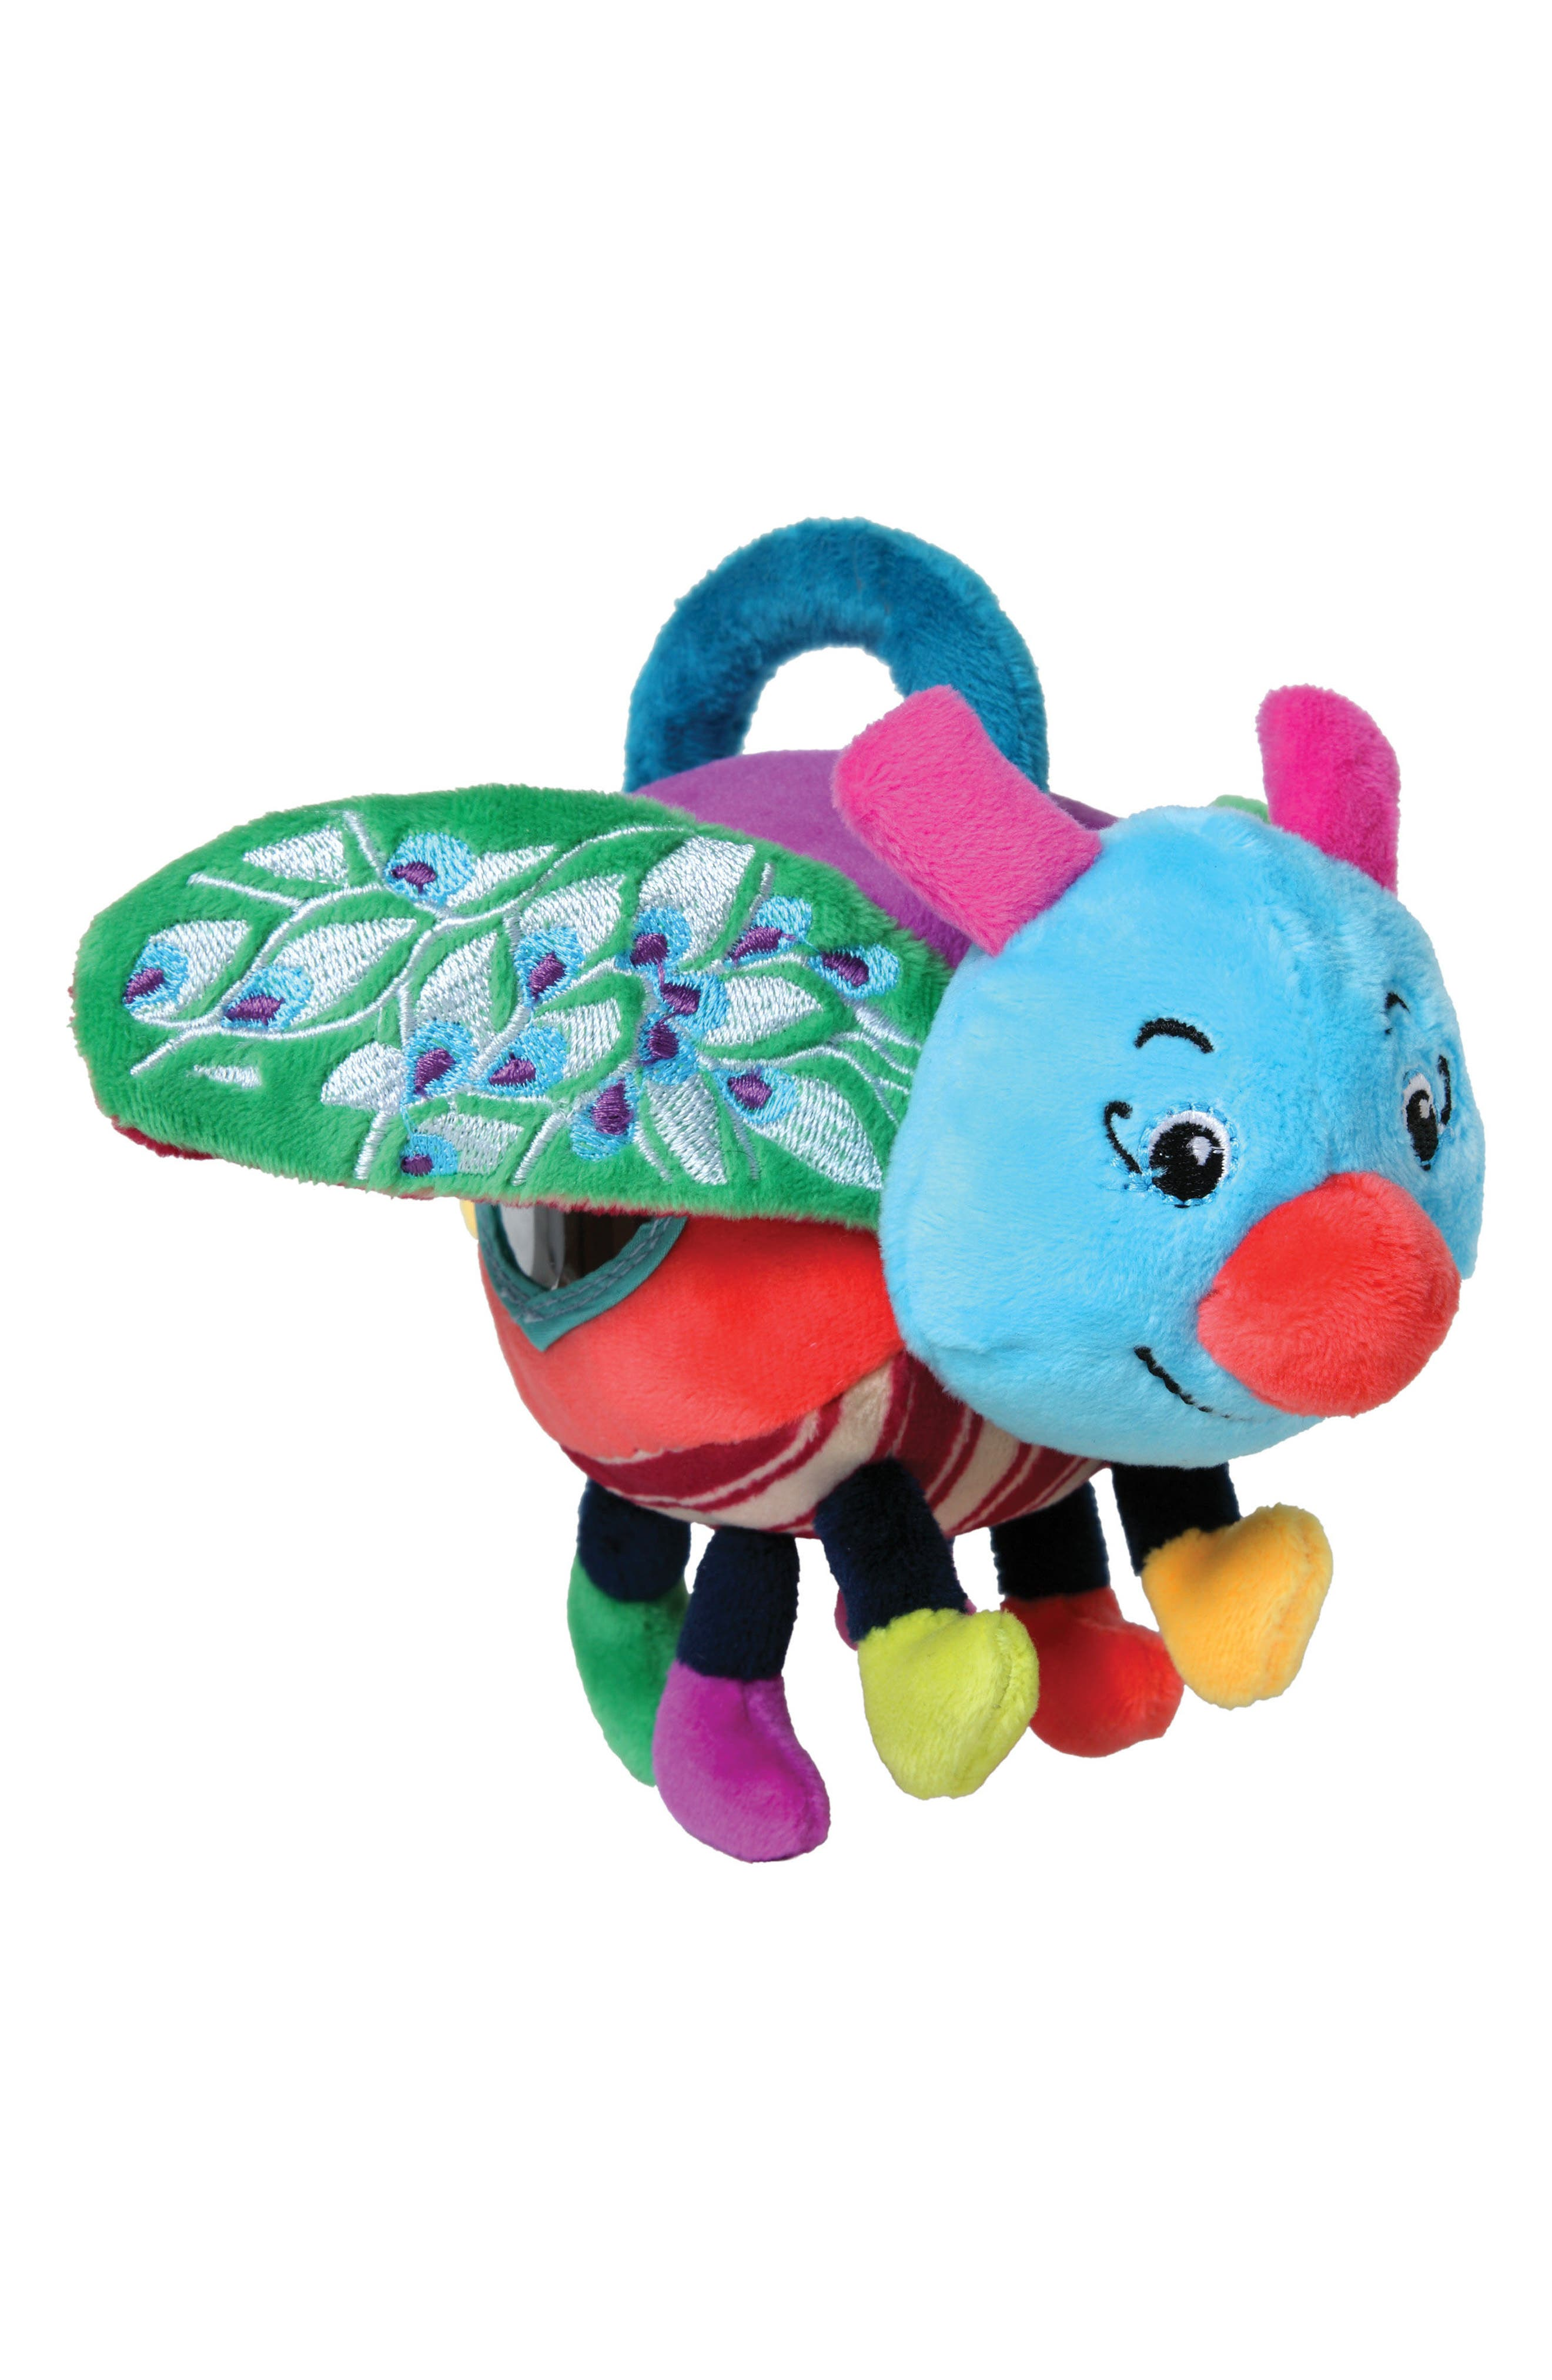 Noisy Bug Stuffed Toy,                             Main thumbnail 1, color,                             400